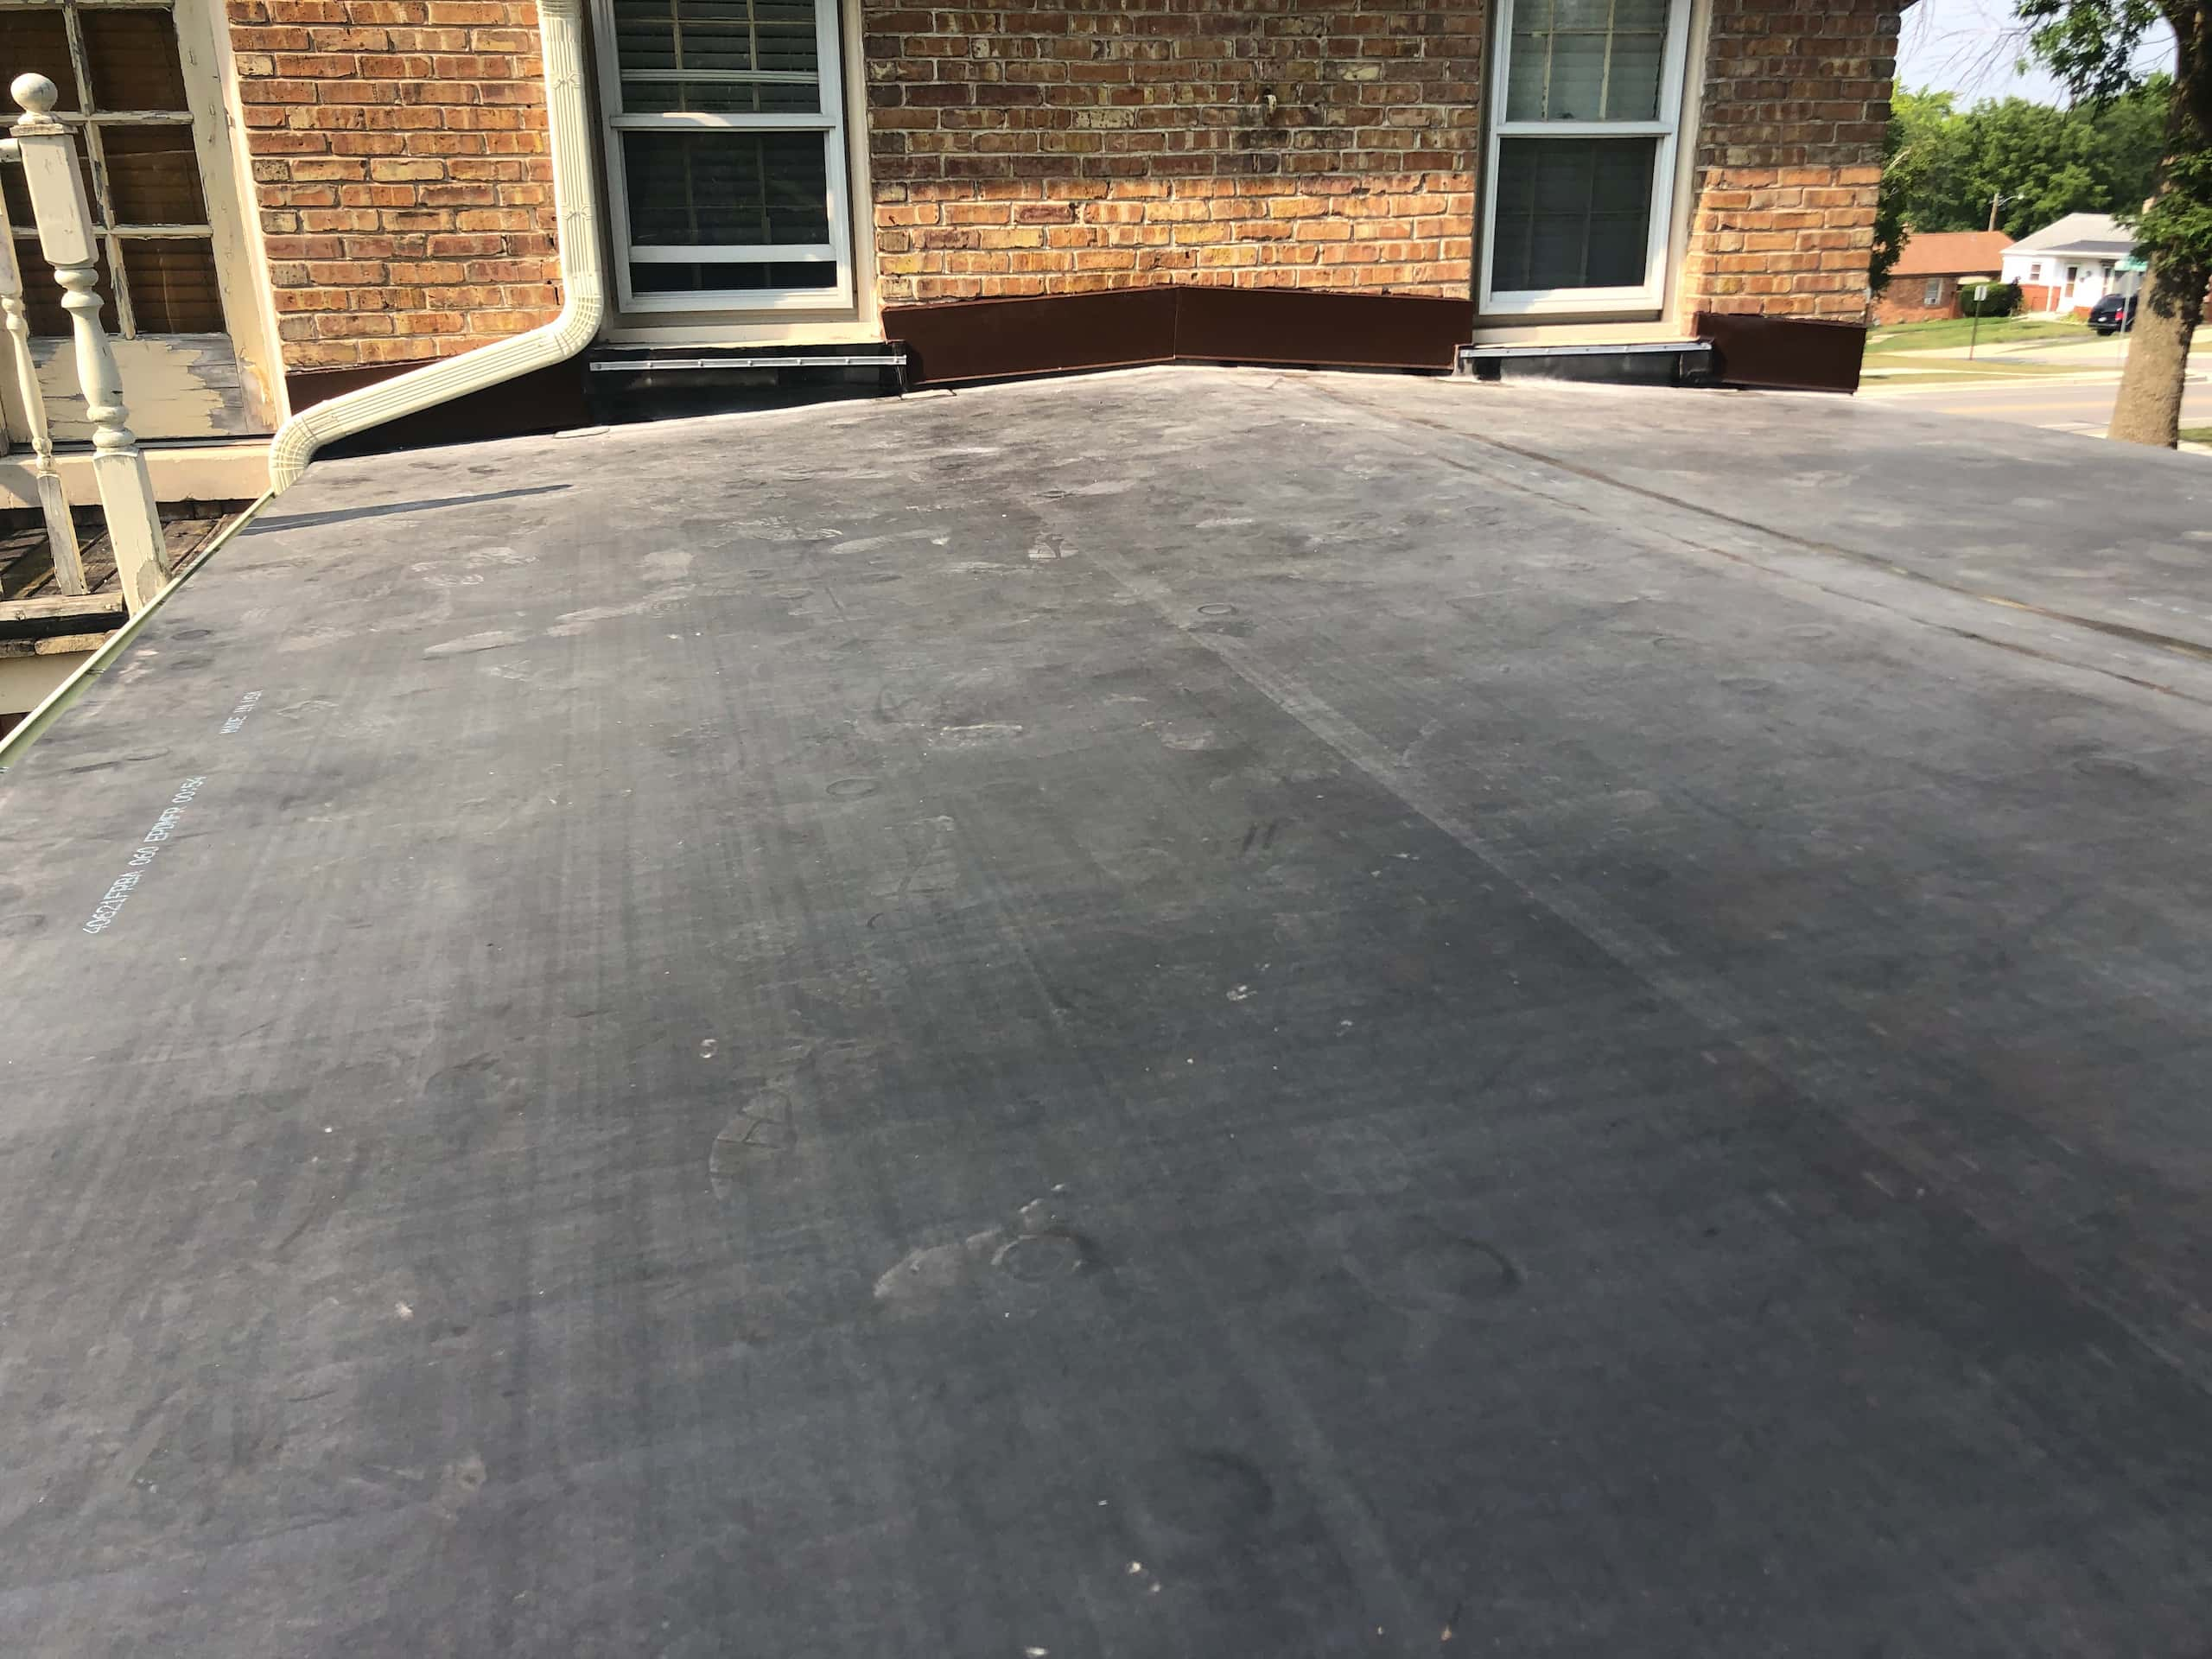 Wisconsin Roofing | Owens Corning Designer Shingles | Aged Copper | EPDM